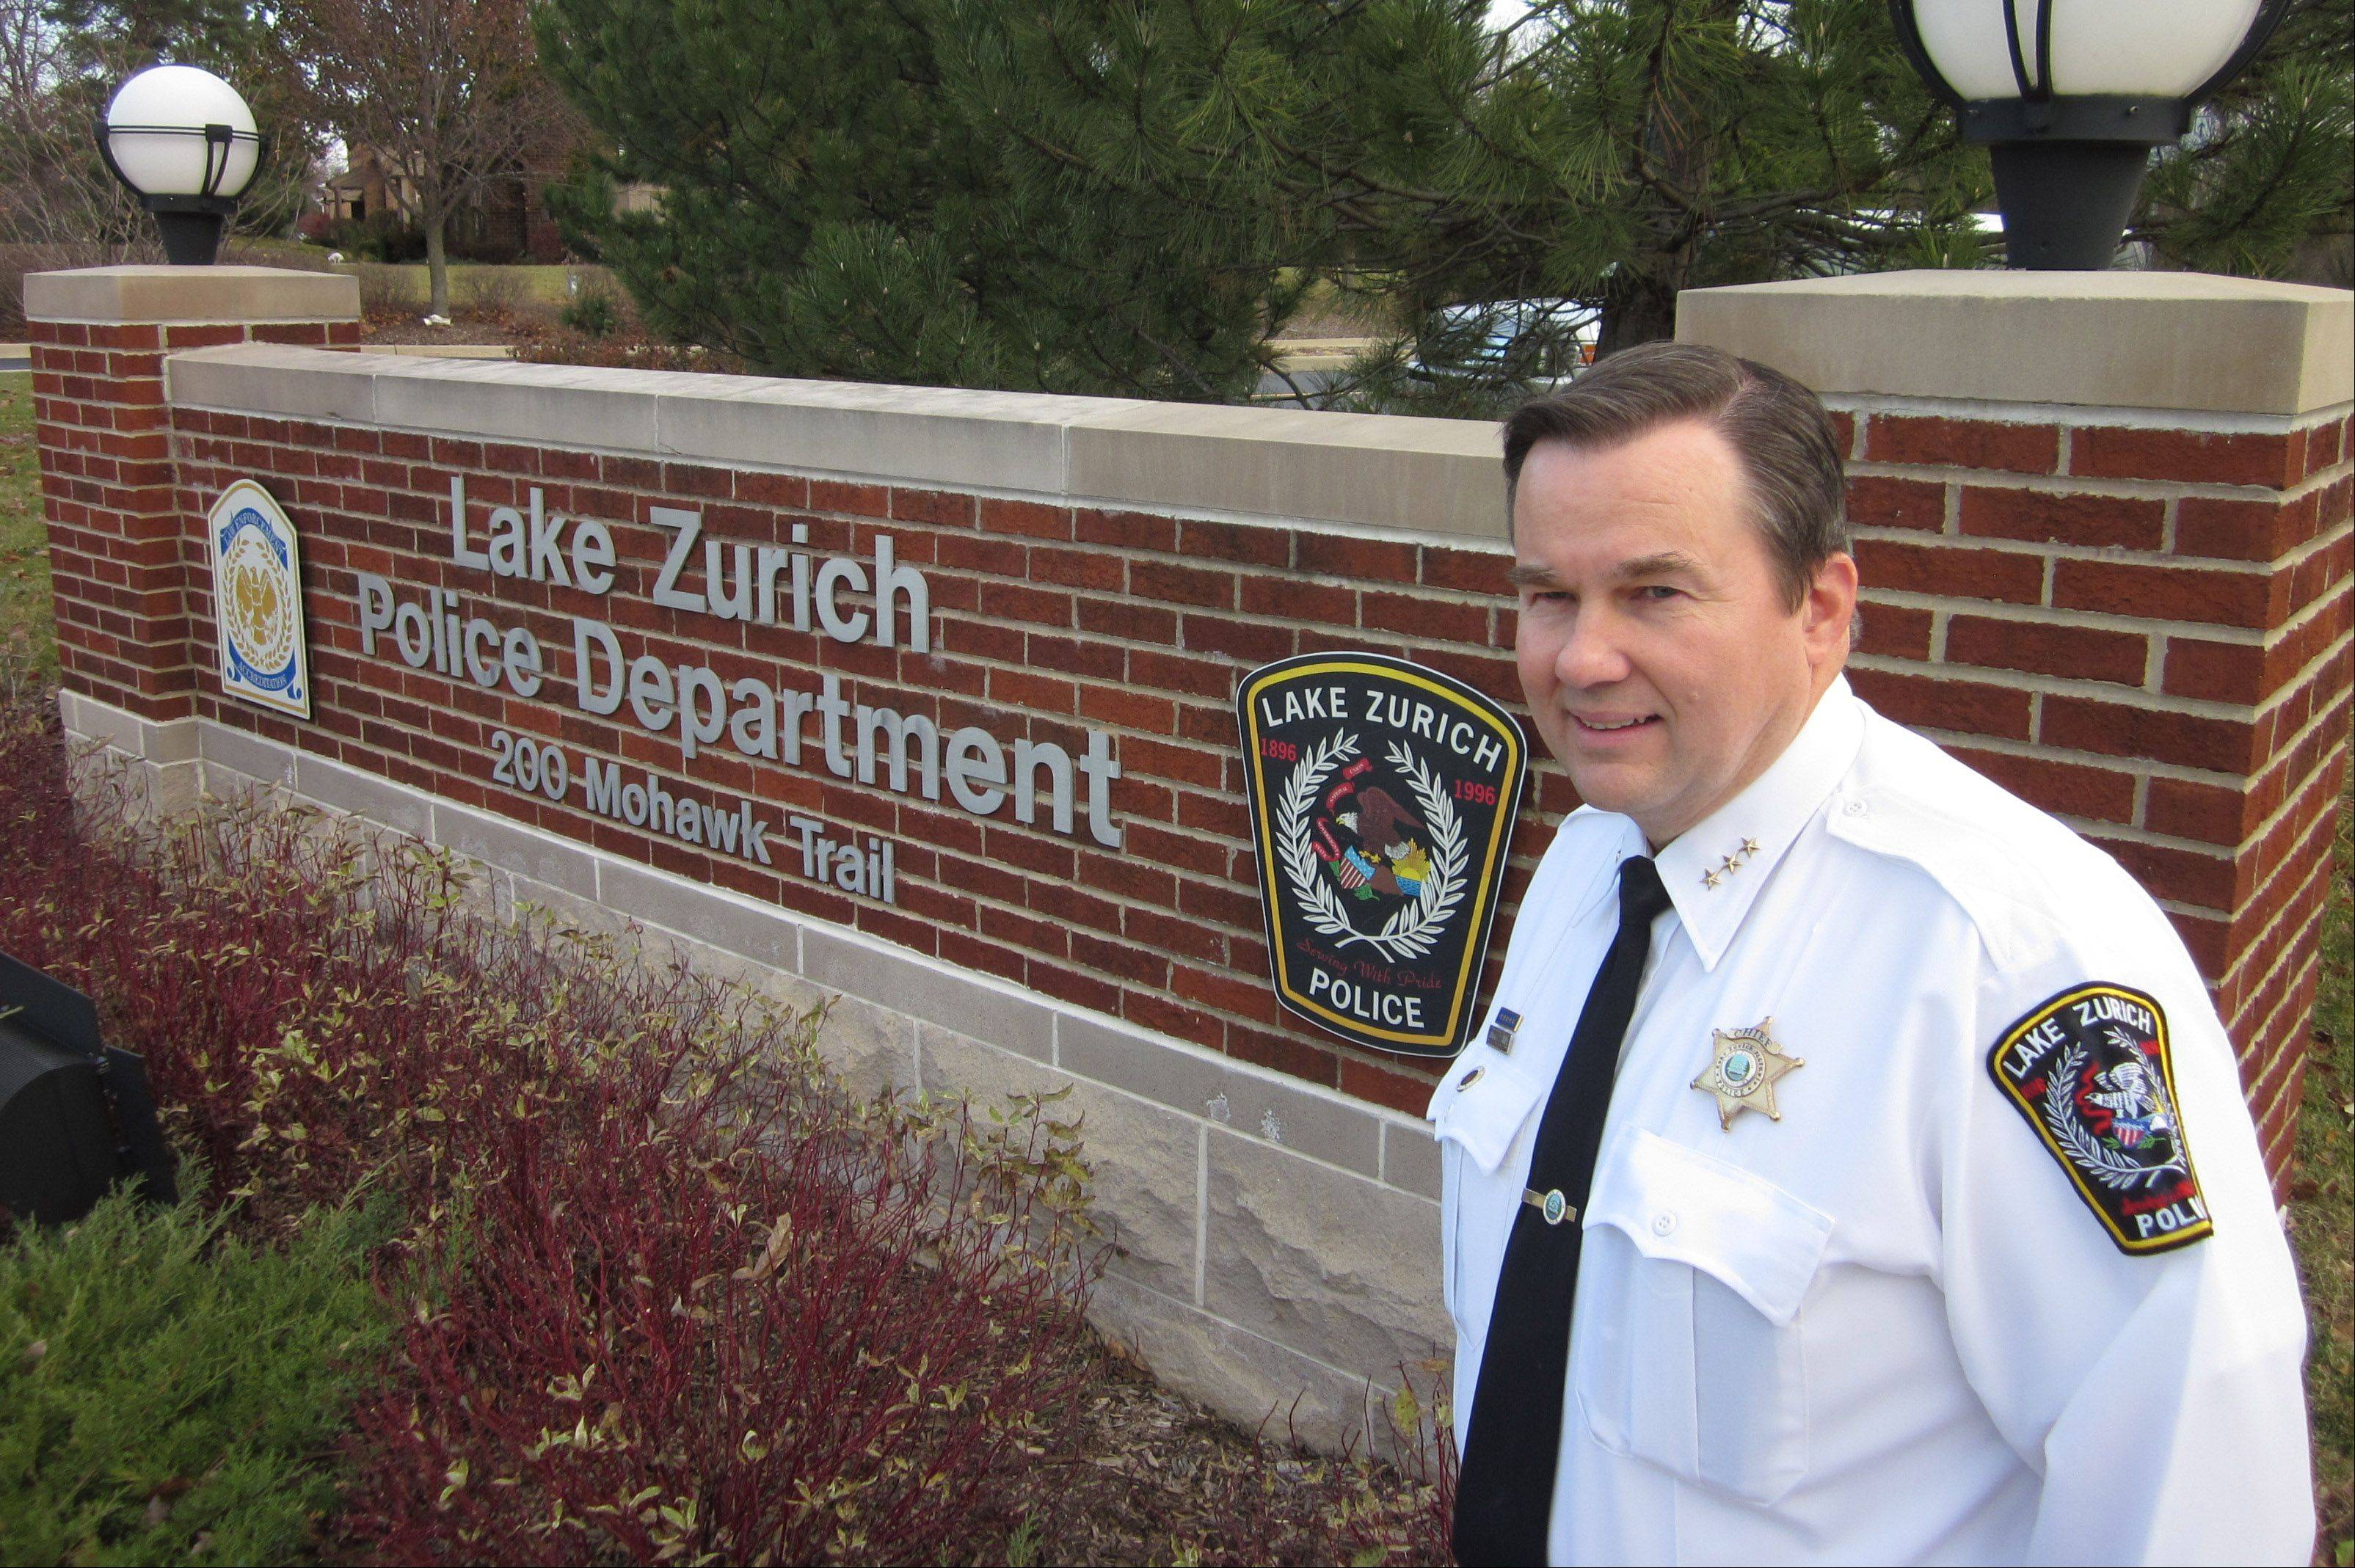 Lake Zurich Police Chief Patrick Finlon says he'll retire later this month. He's been chief since 2008 and with the village's police department for 29 years.